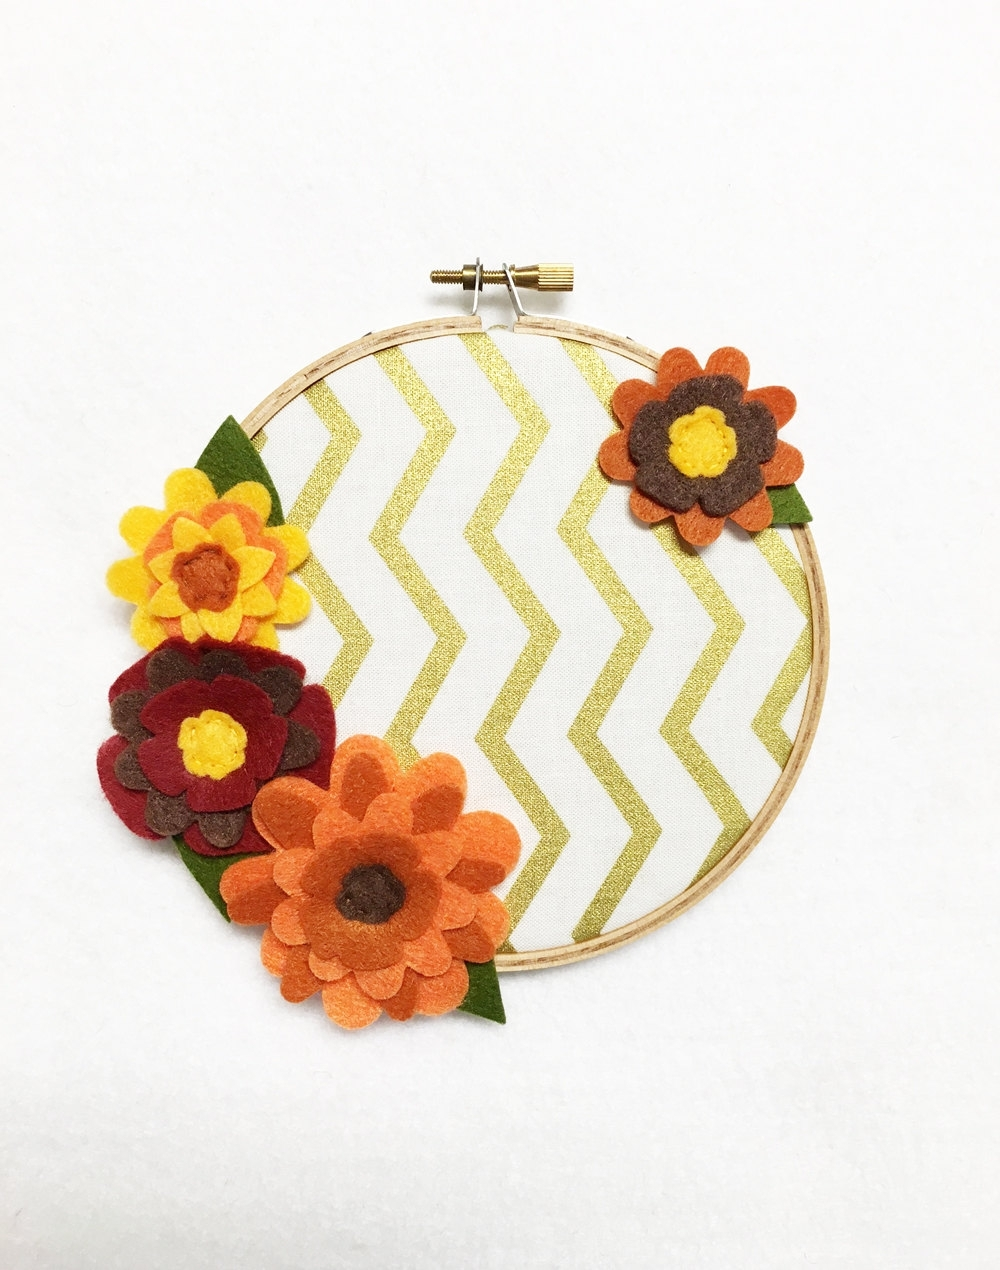 Fabric Wall Art, Embroidery Hoop Art, Regal Autumn, Fall Pertaining To Best And Newest Fabric Hoop Wall Art (View 7 of 15)